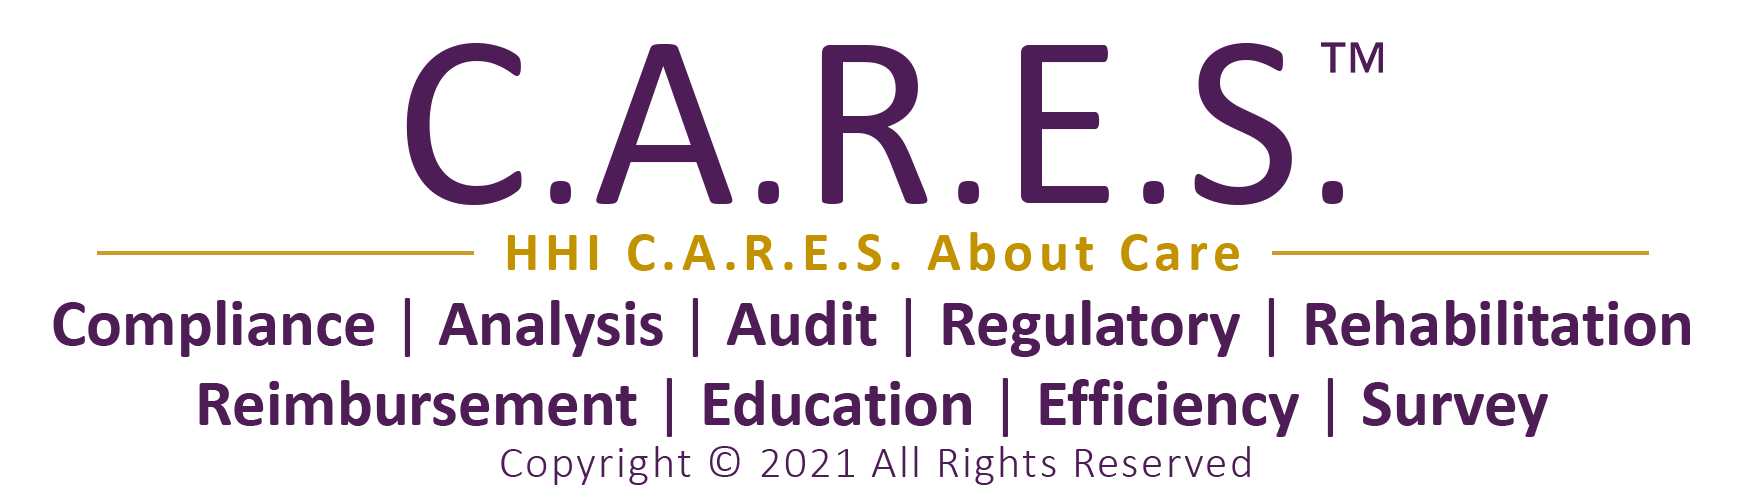 Harmony Healthcare International C.A.R.E.S. System | Compliance, Audit, Analysis, Reimbursement, Regulatory, Rehabilitation, Education, Efficiency, Survey